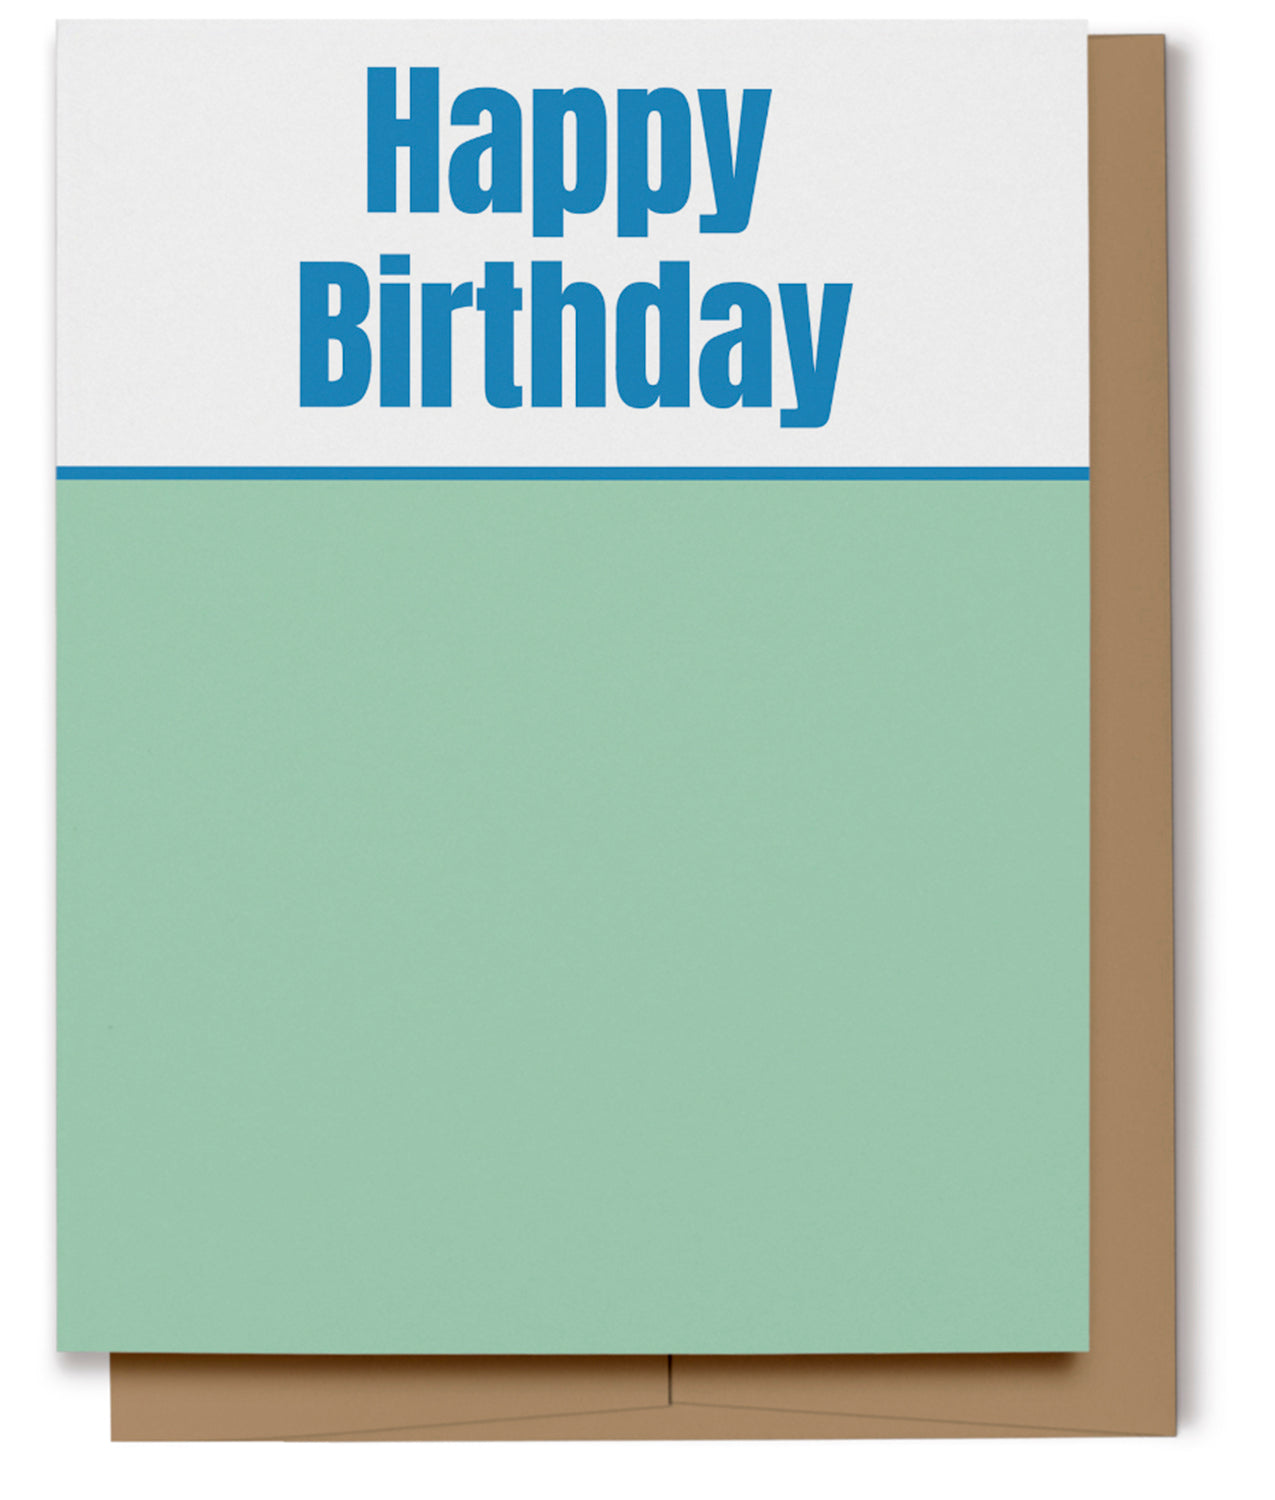 Happy Birthday Card - Blue & Green (100% Recycled)